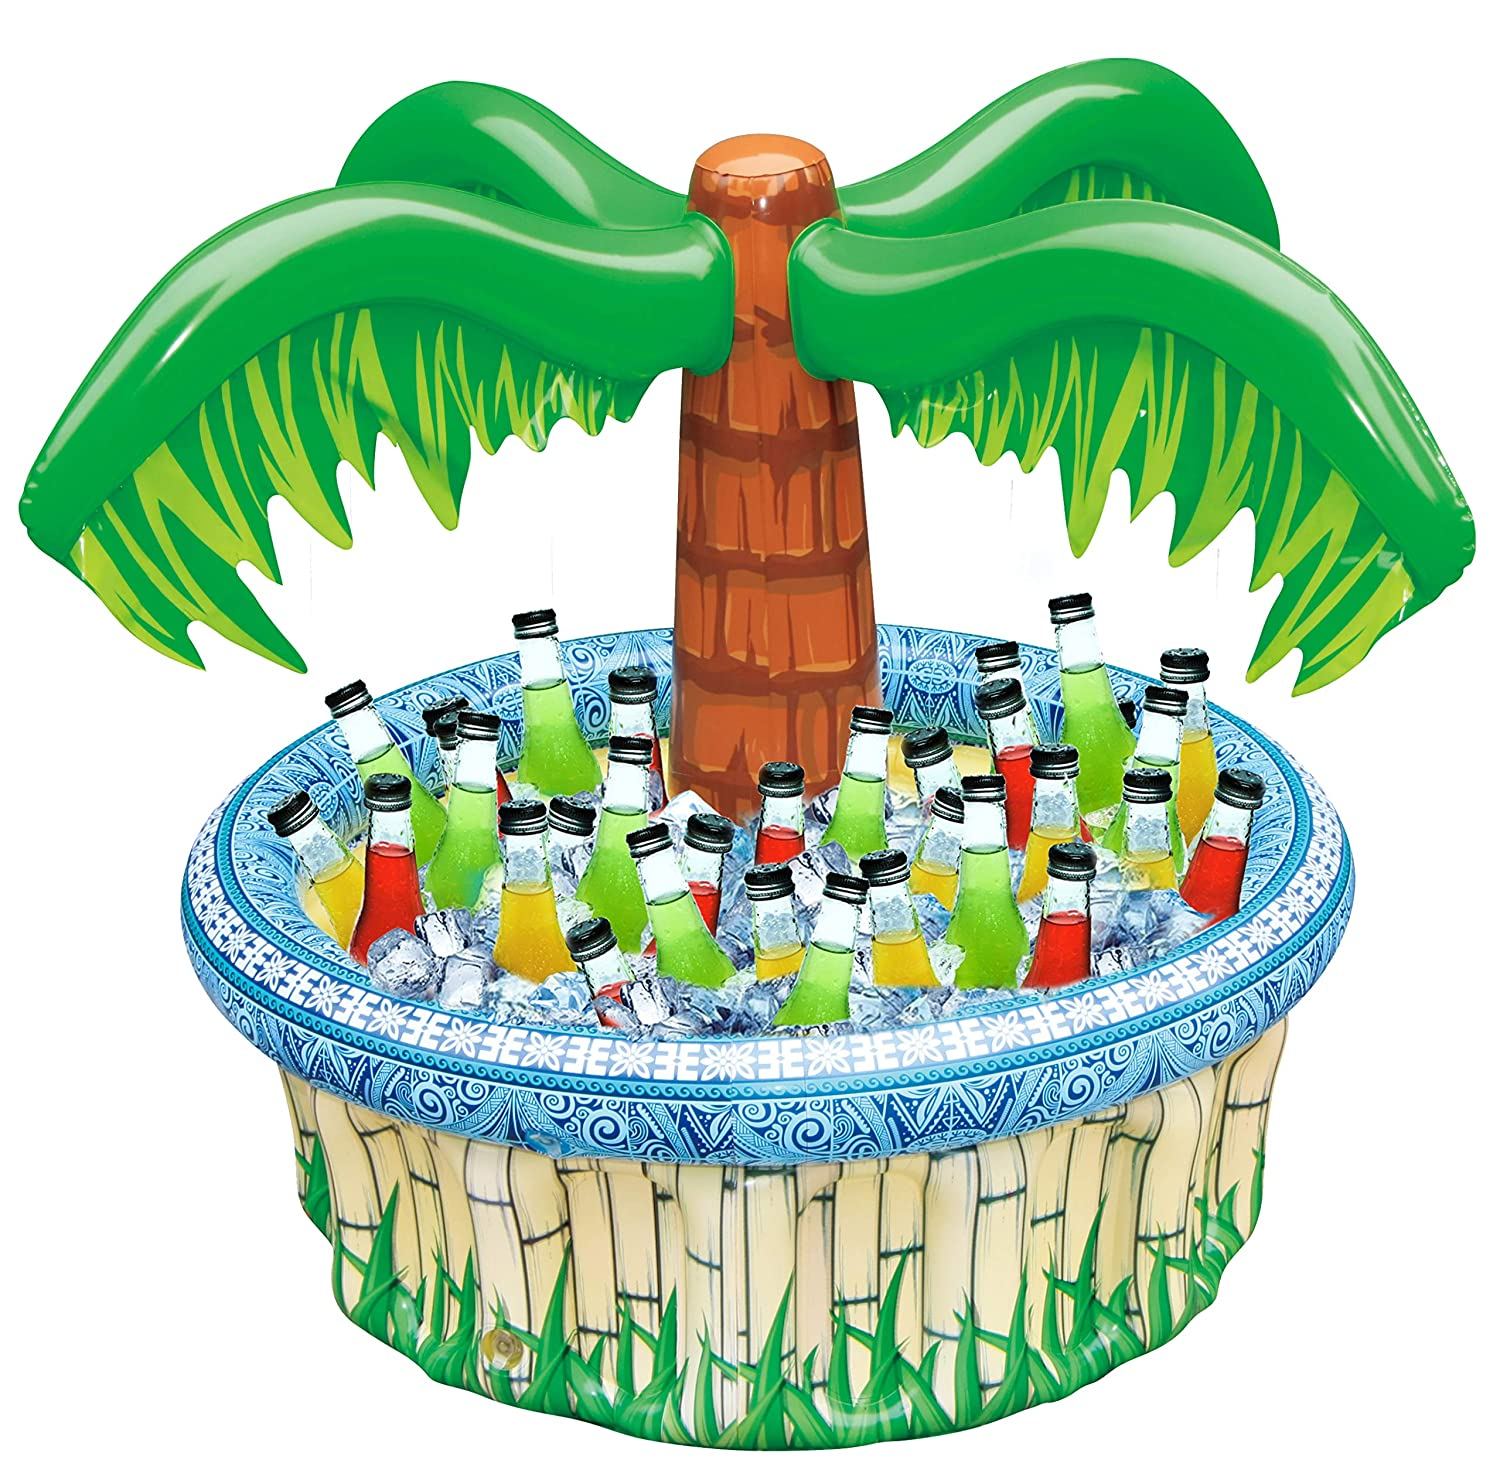 Inflables para bebidas pool party (70cm alto)